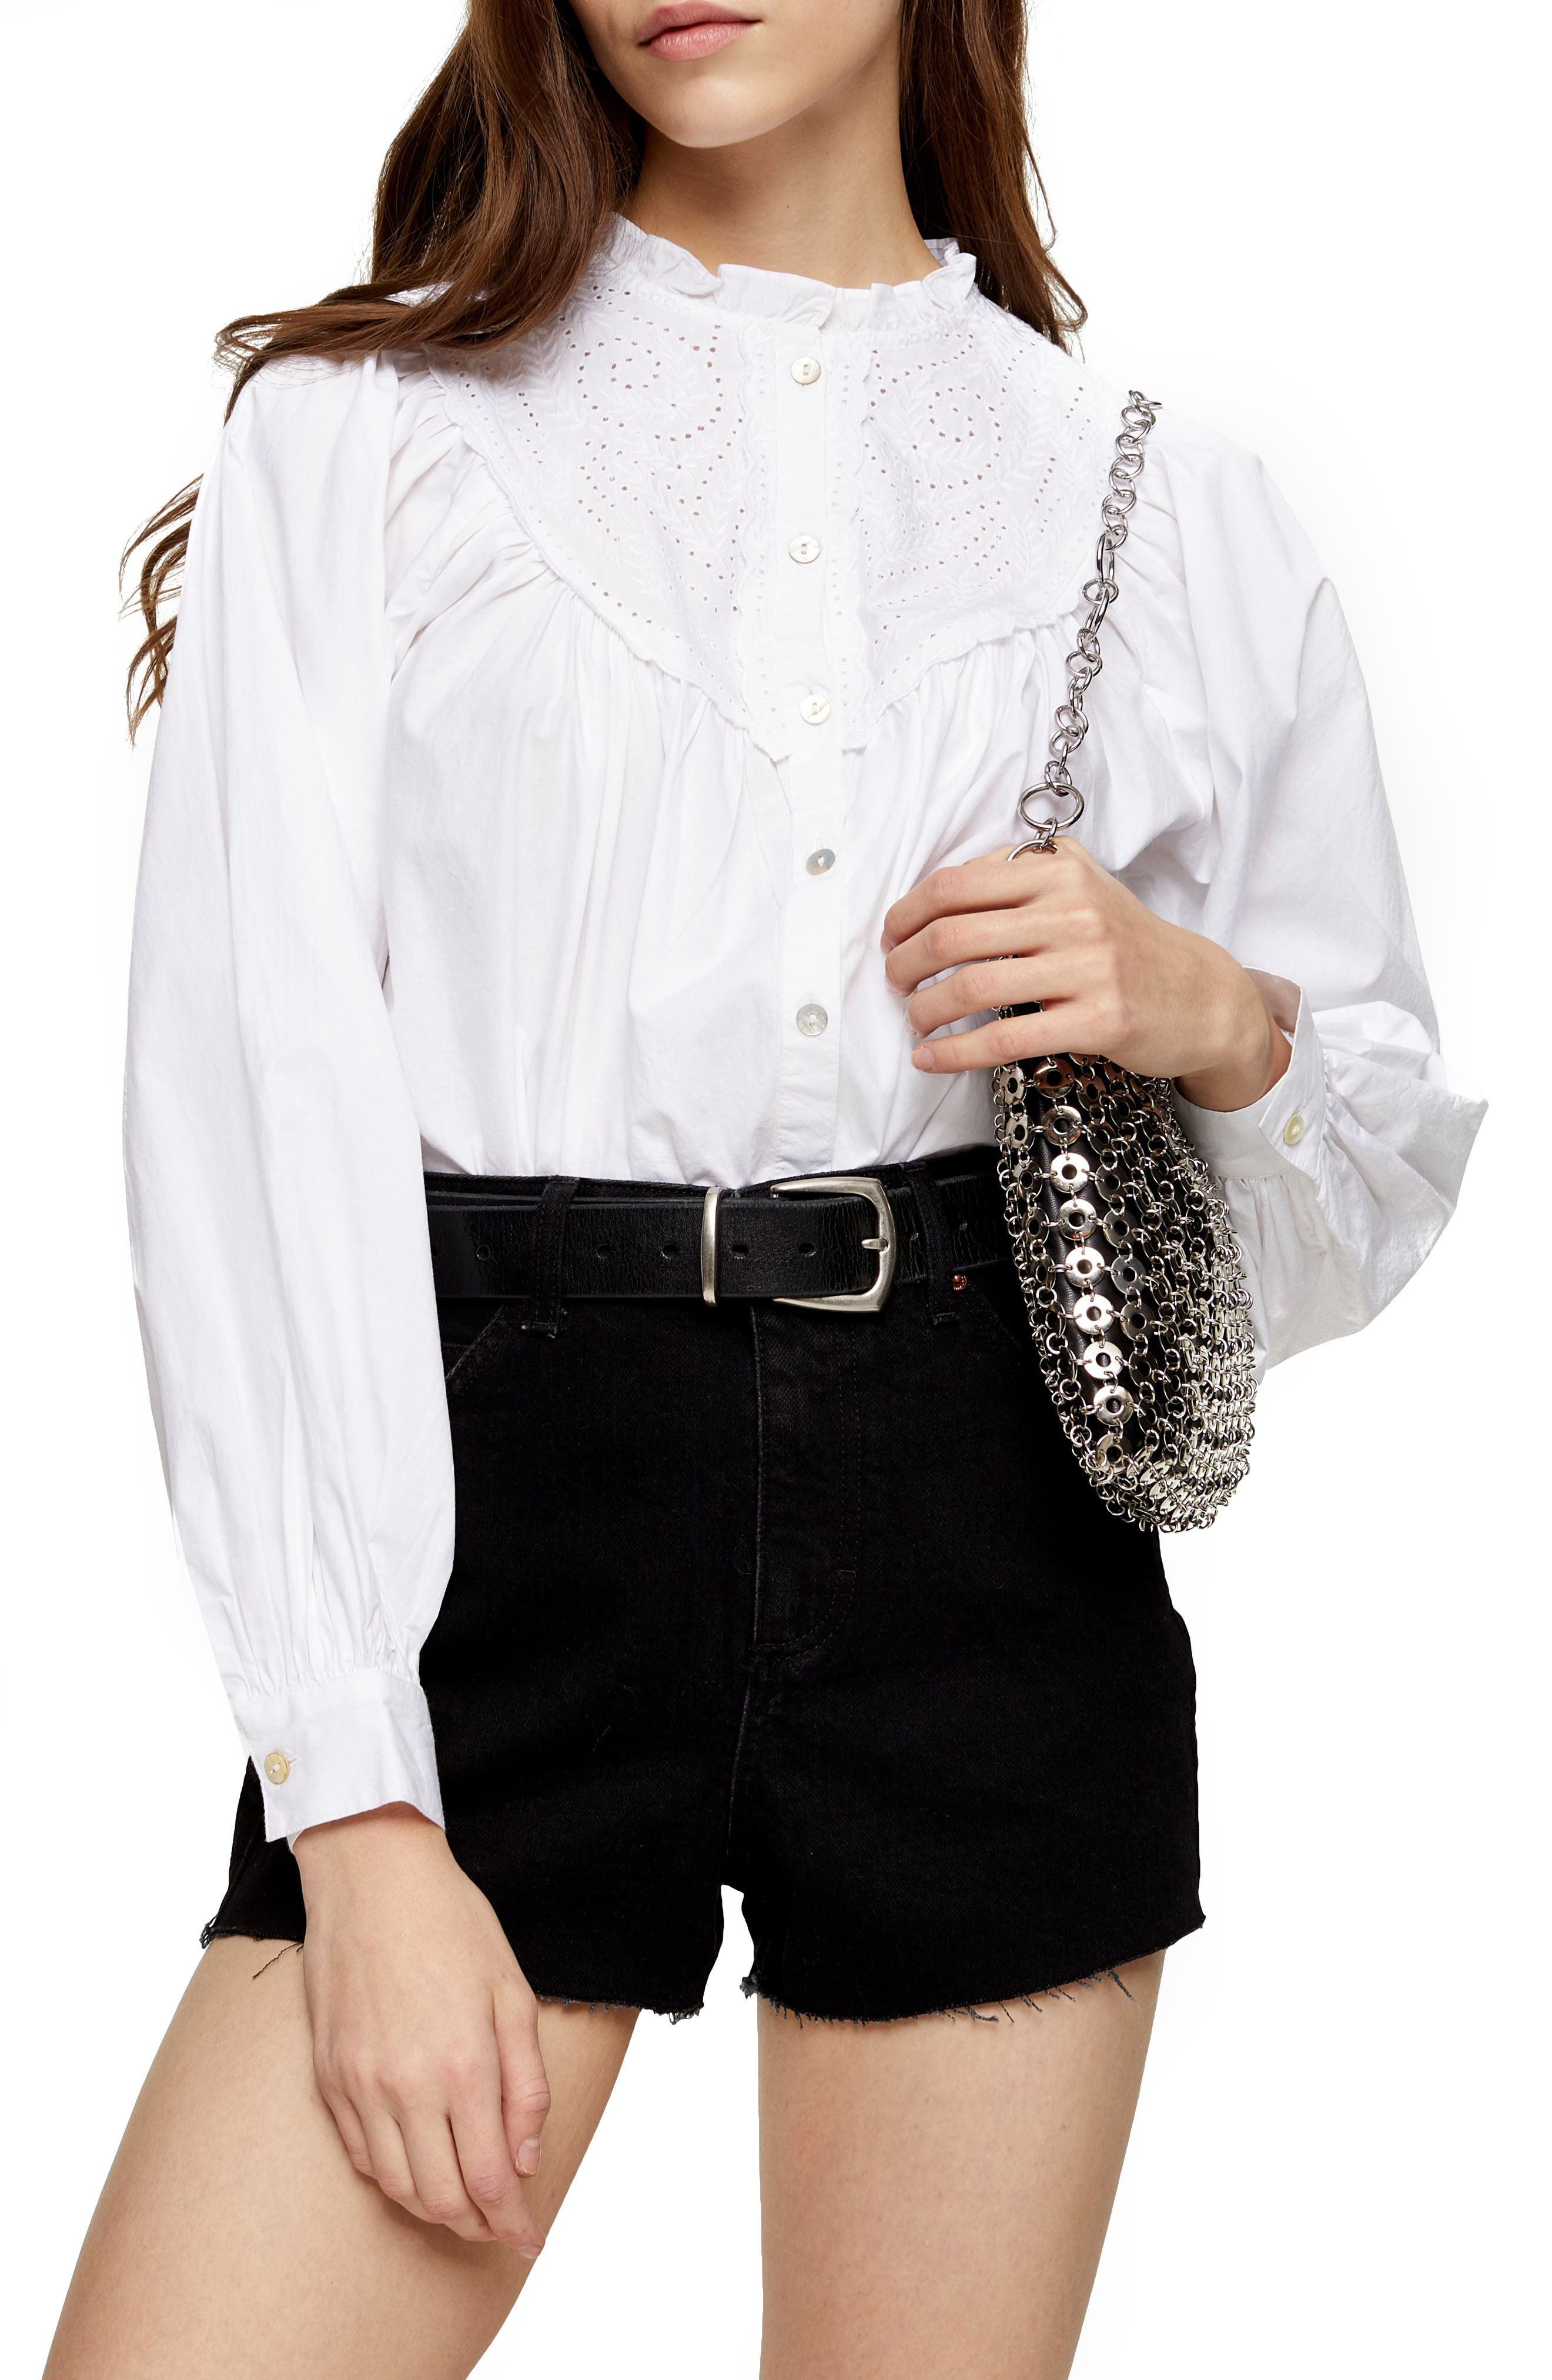 Edwardian Blouses | White & Black Lace Blouses & Sweaters Womens Topshop Broderie Anglaise Poet Shirt Size 2 US - White $68.00 AT vintagedancer.com